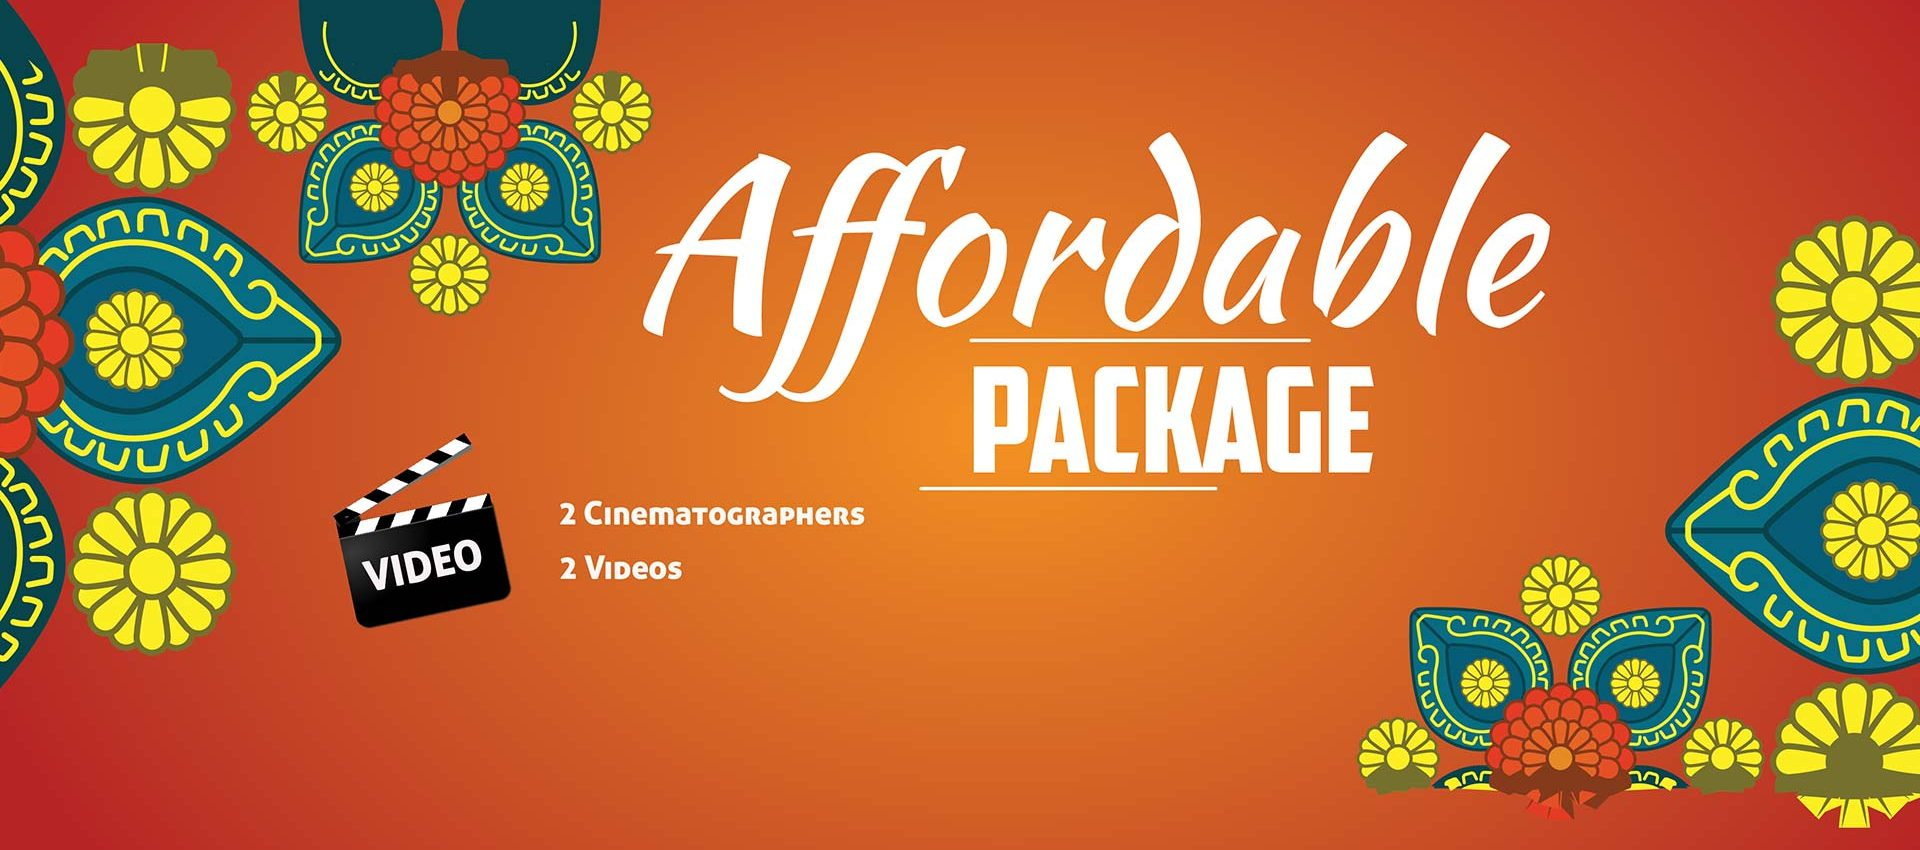 Affordable Package Cinematography